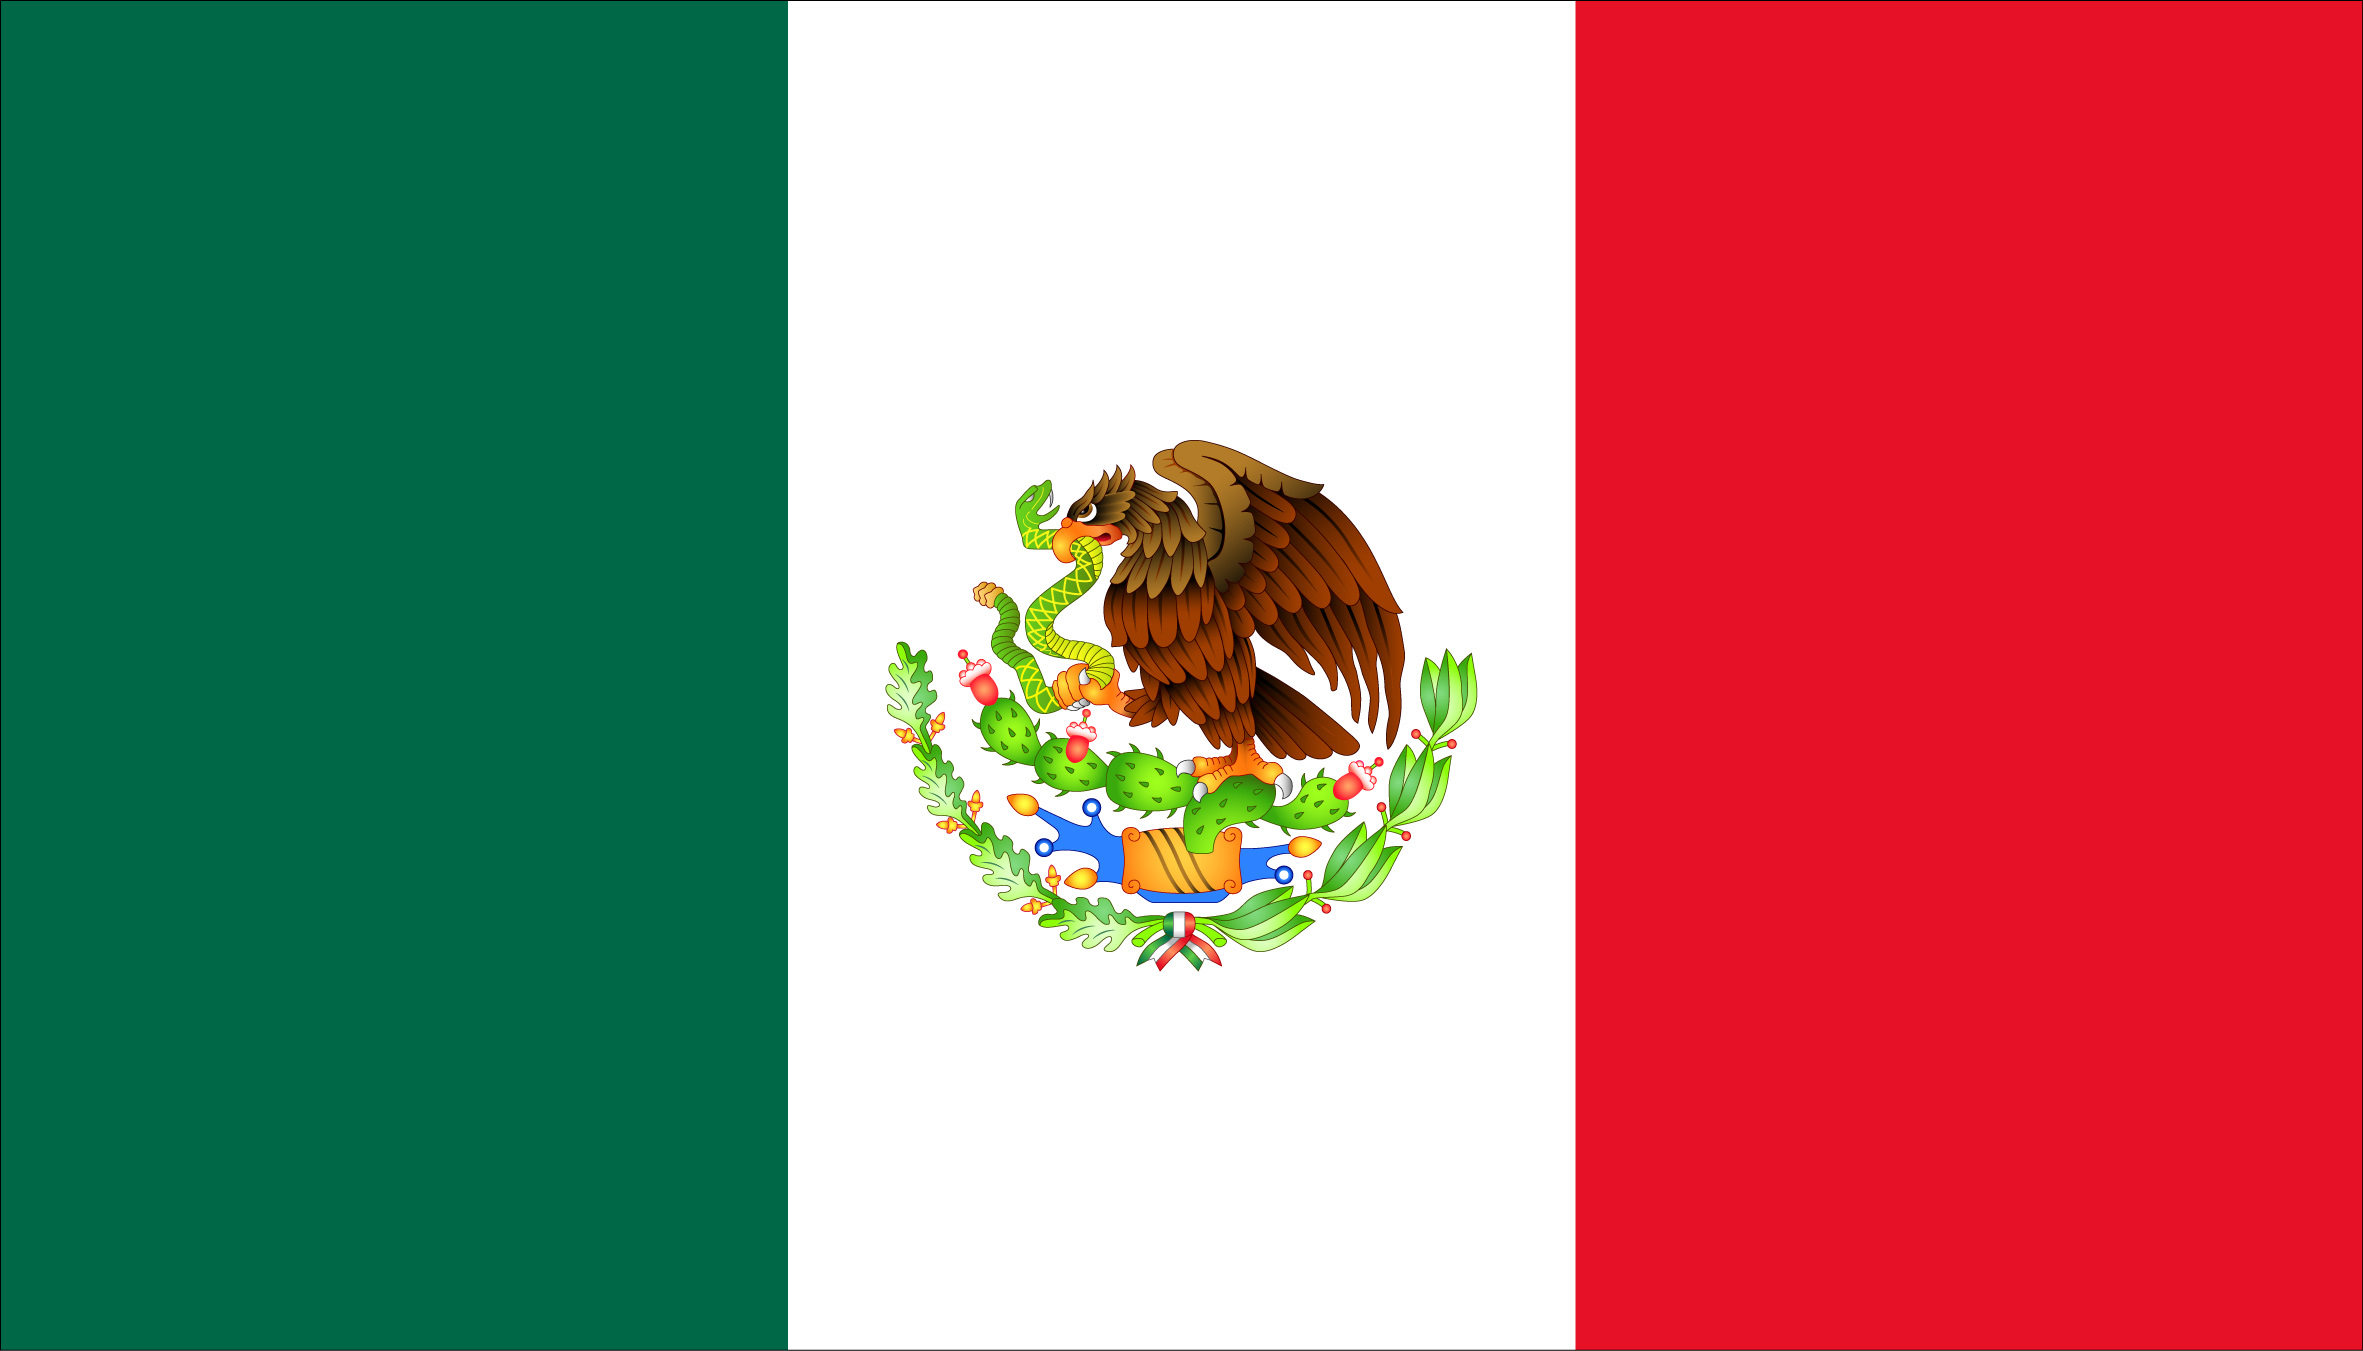 United states mexico flag clipart banner library download Mexico flag clipart - ClipartFest banner library download